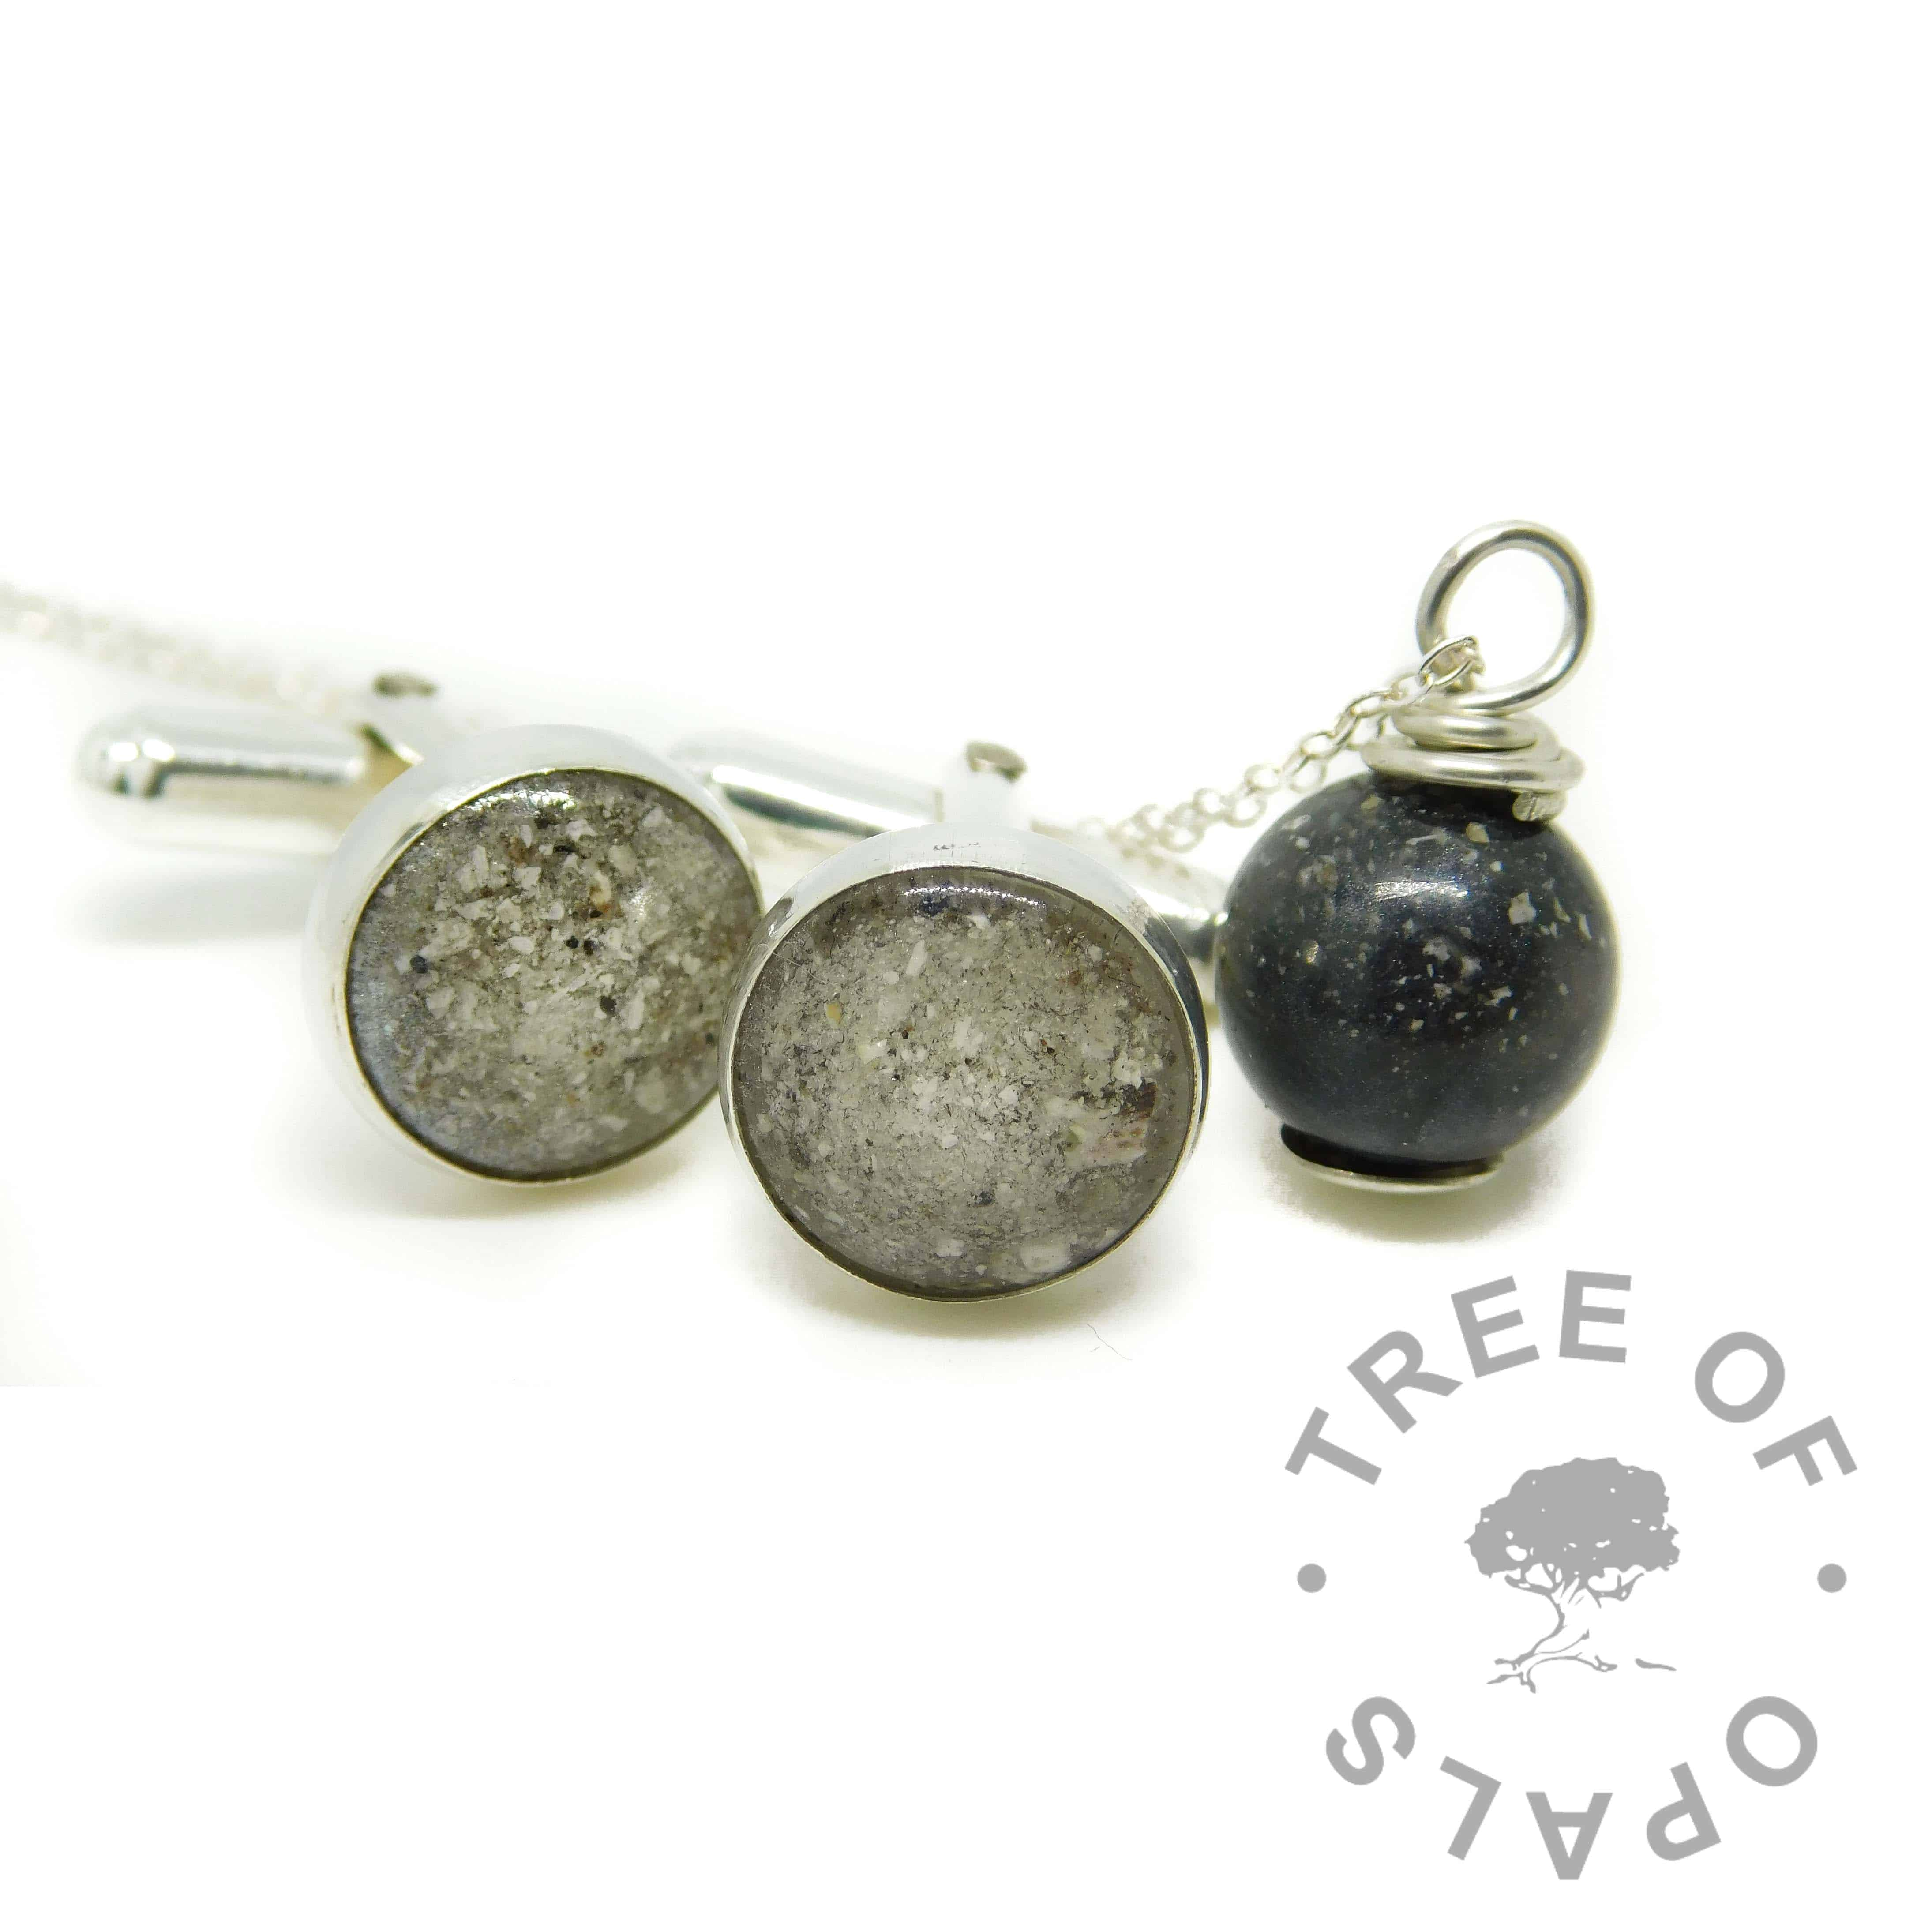 diamond powder April birthstone and cremation ashes cufflinks and black resin ashes pearl necklace - family order